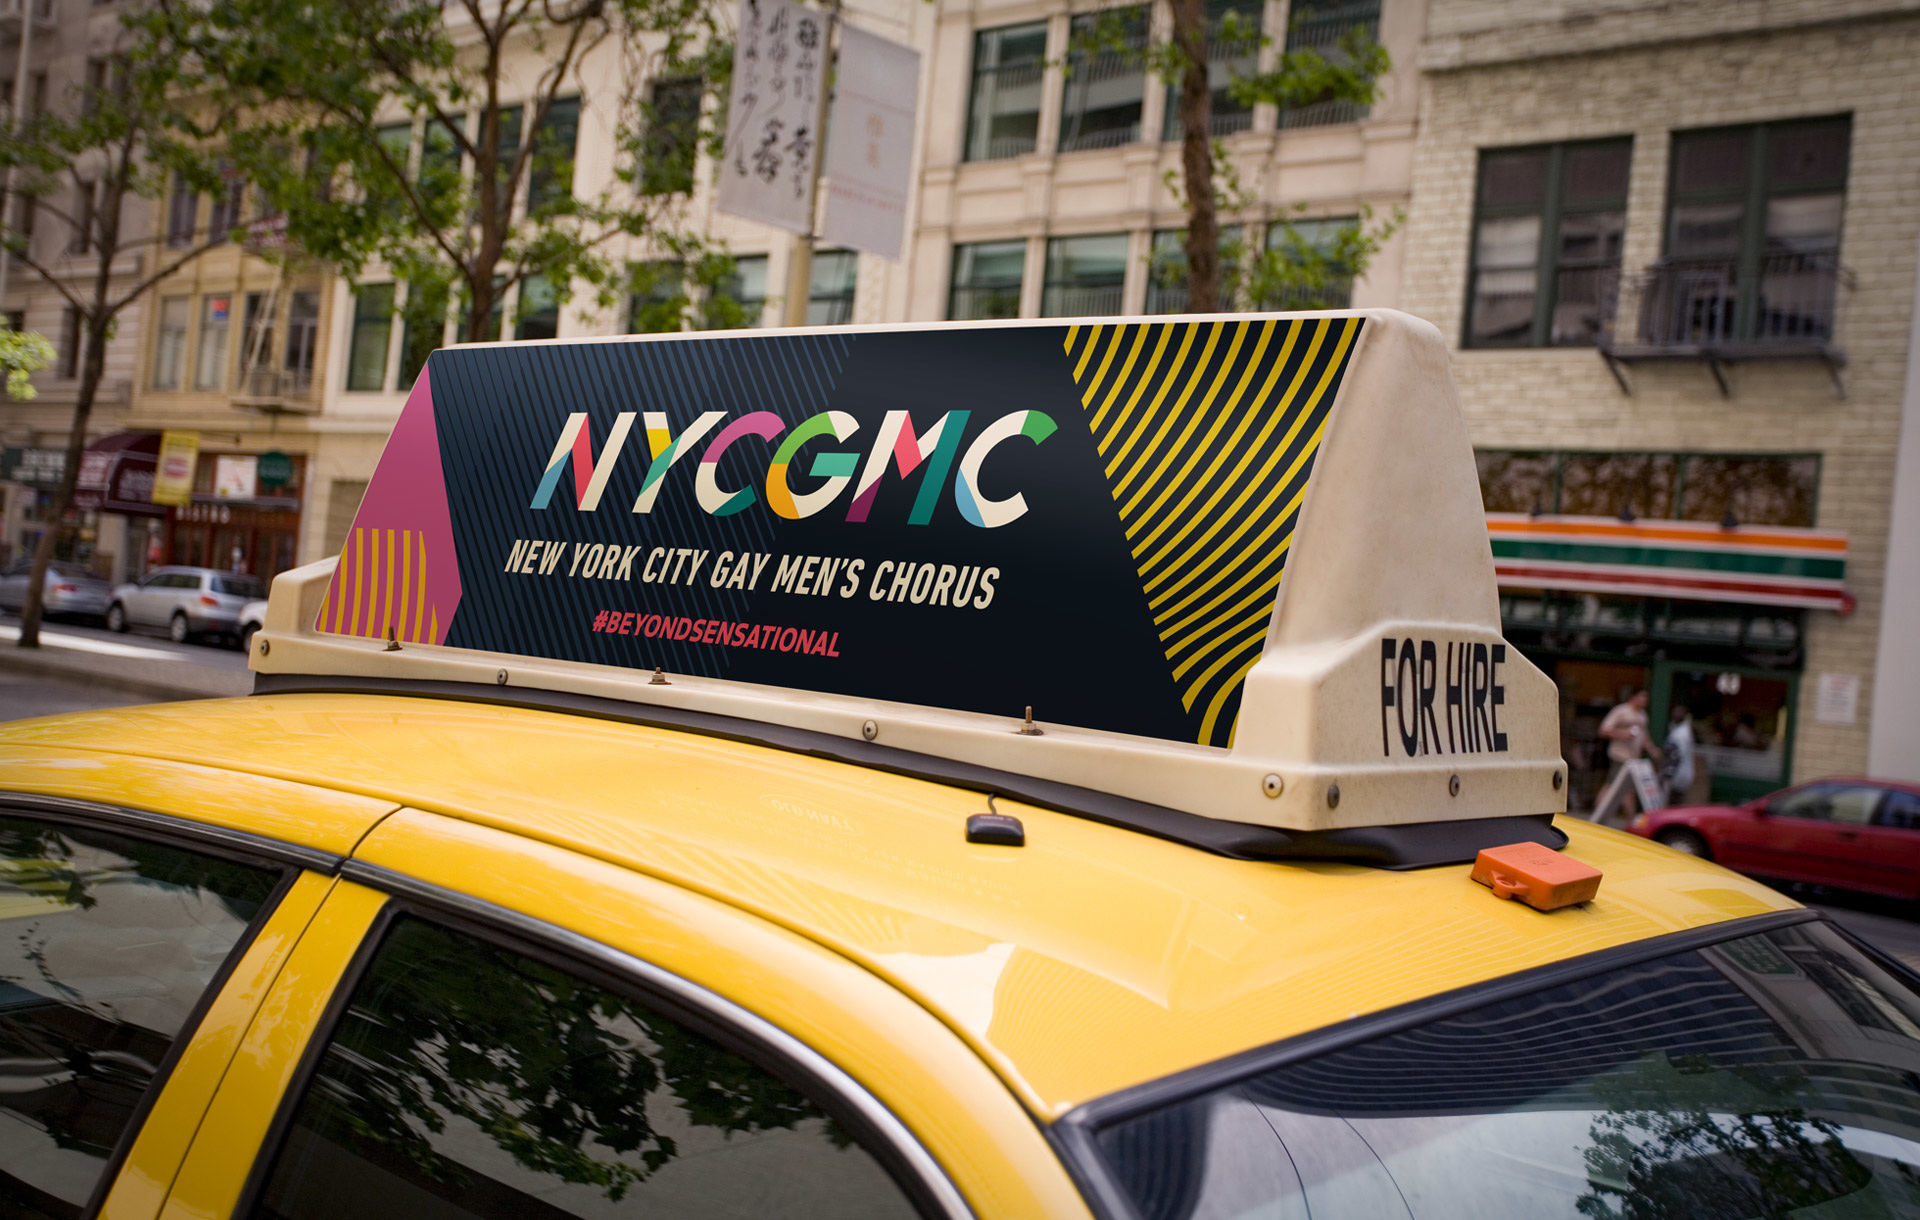 NYCGMC-15-Taxi